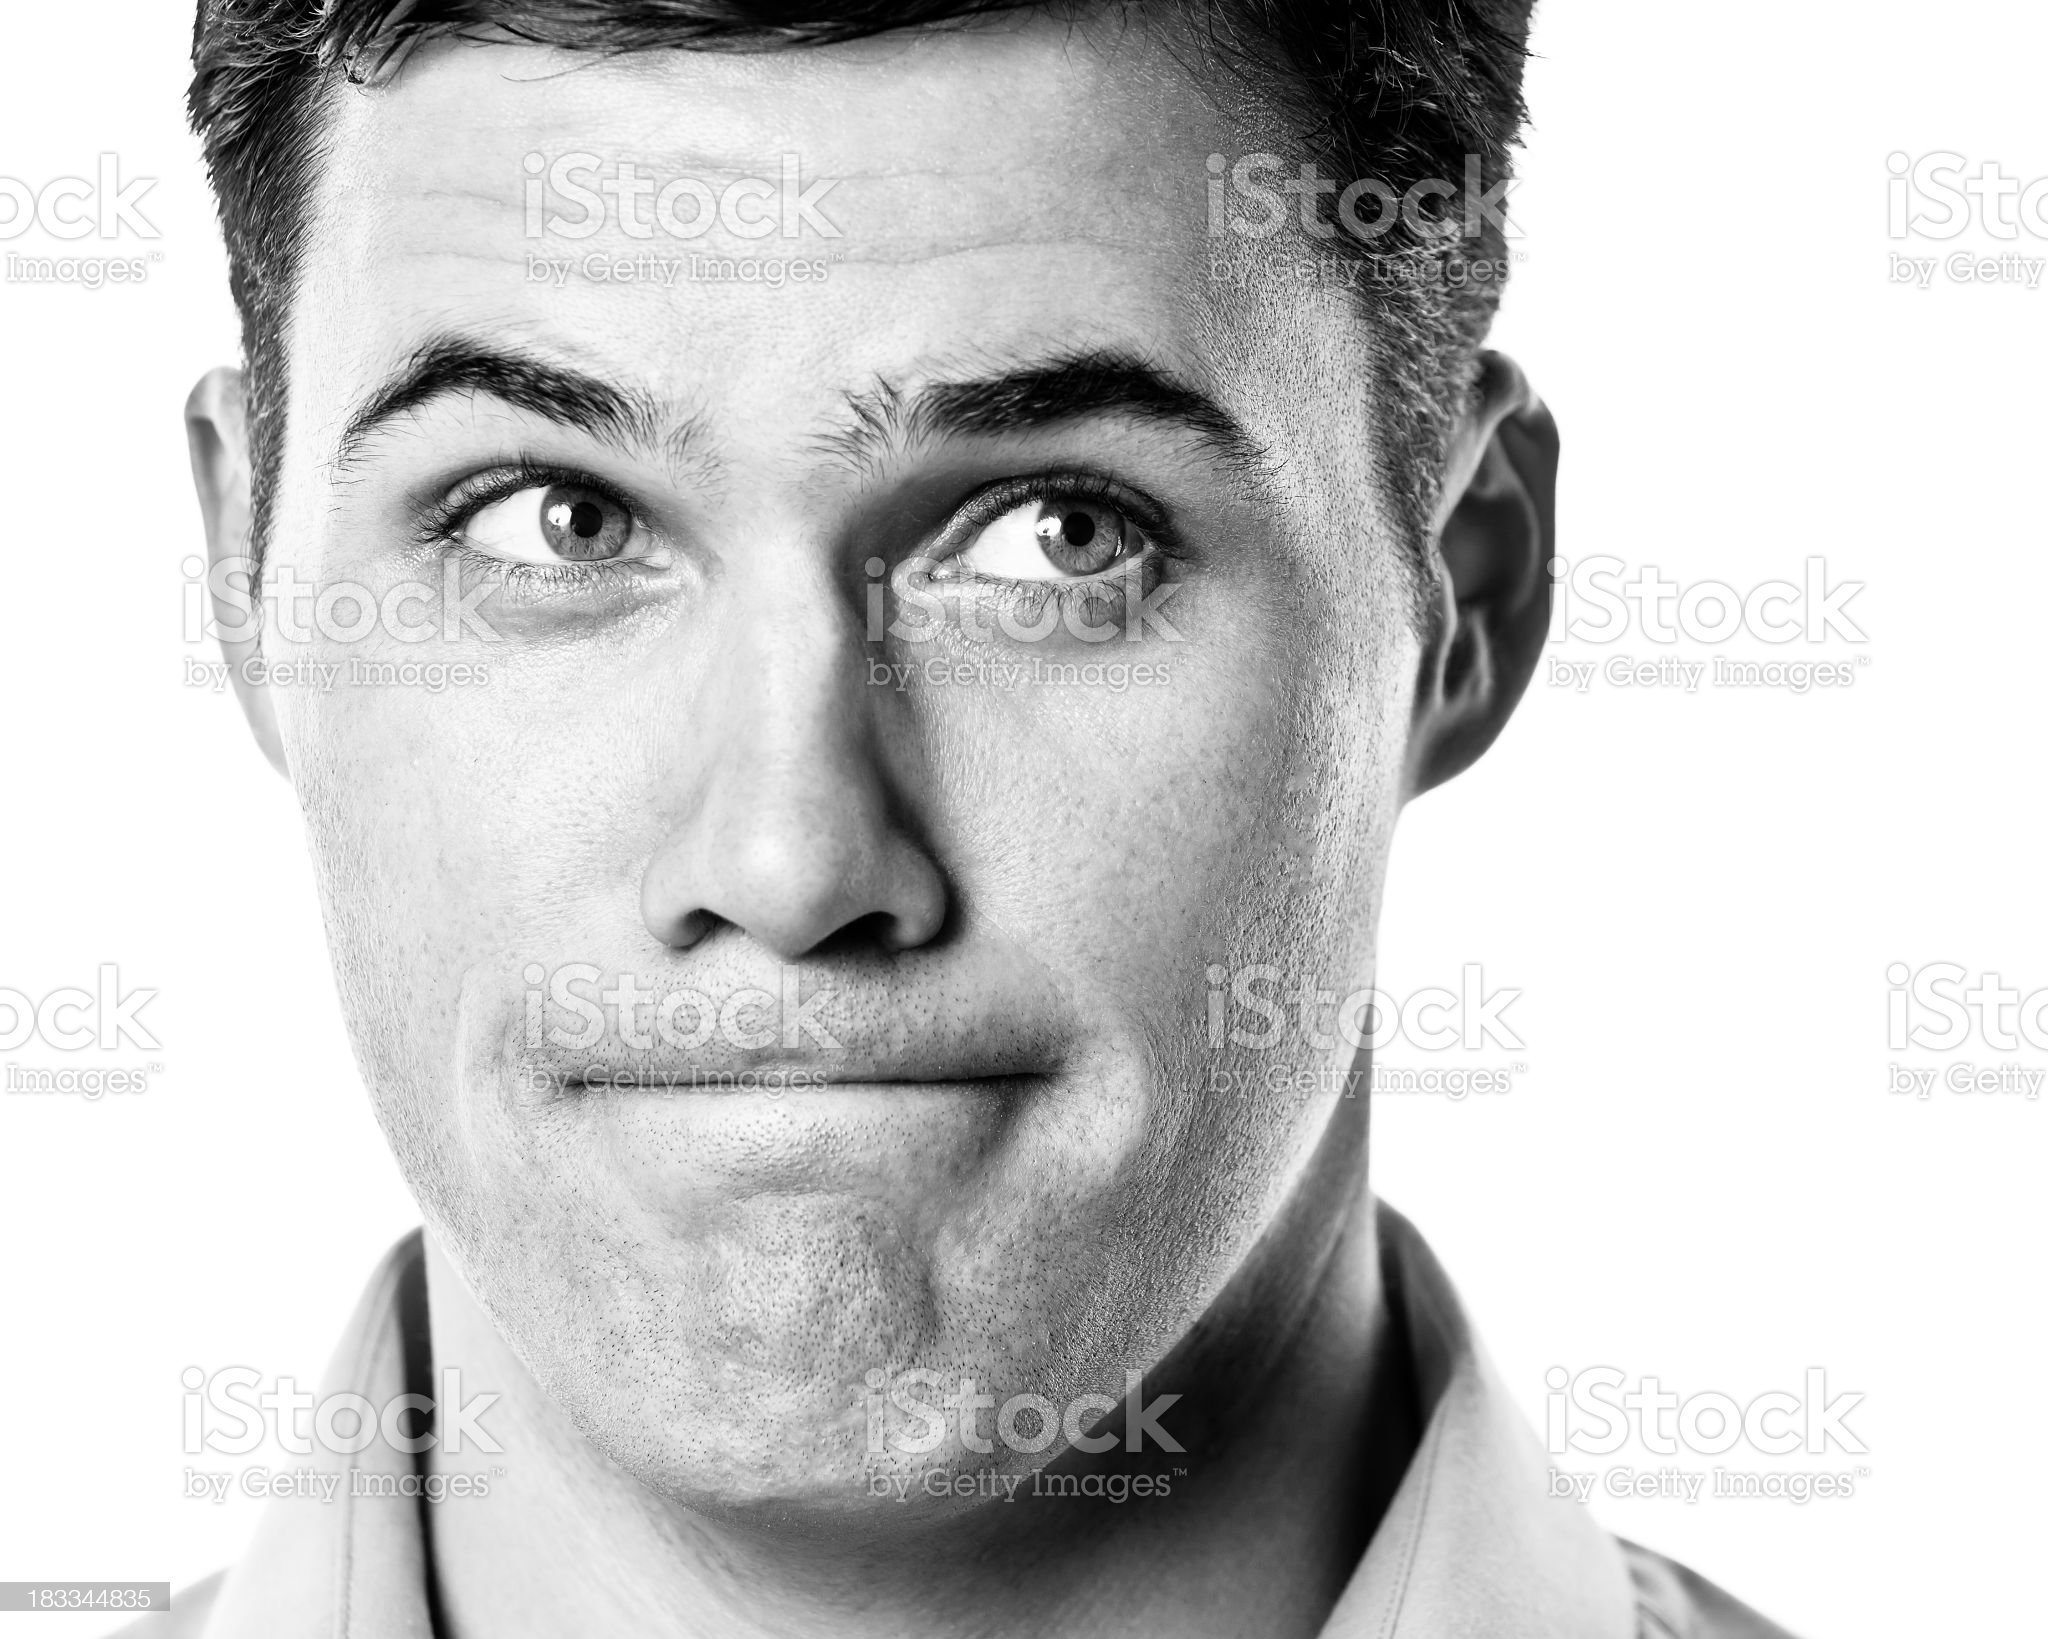 Black And White Male Headshot royalty-free stock photo